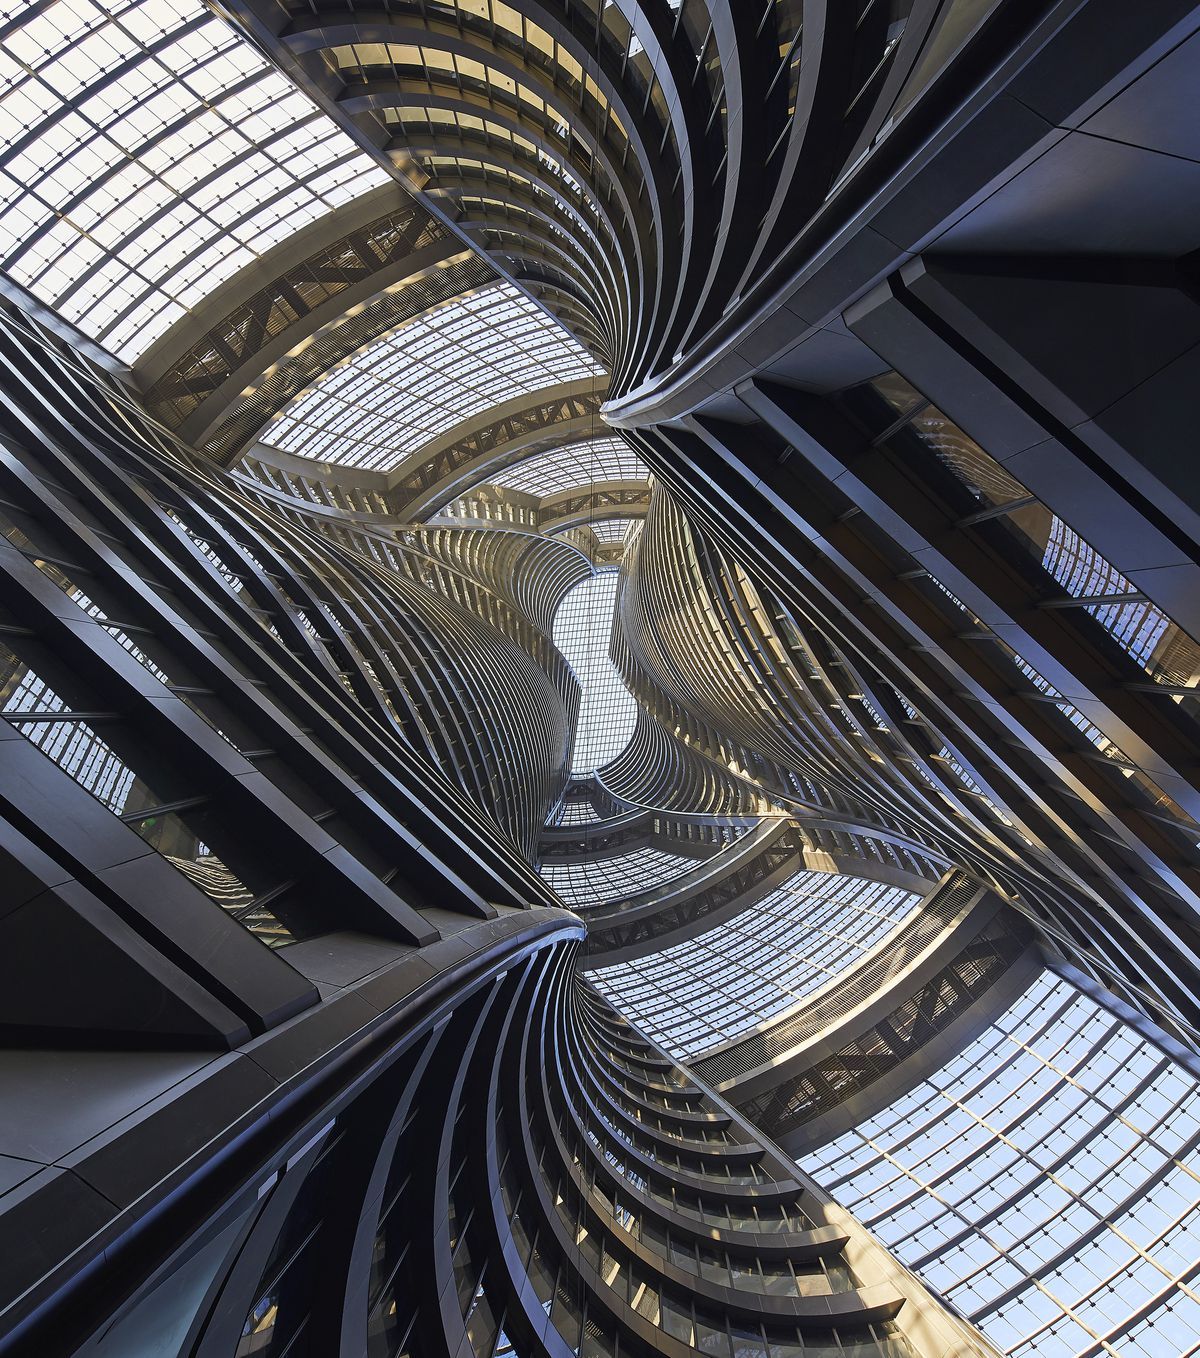 Photo looking up at an atrium in a glass tower.